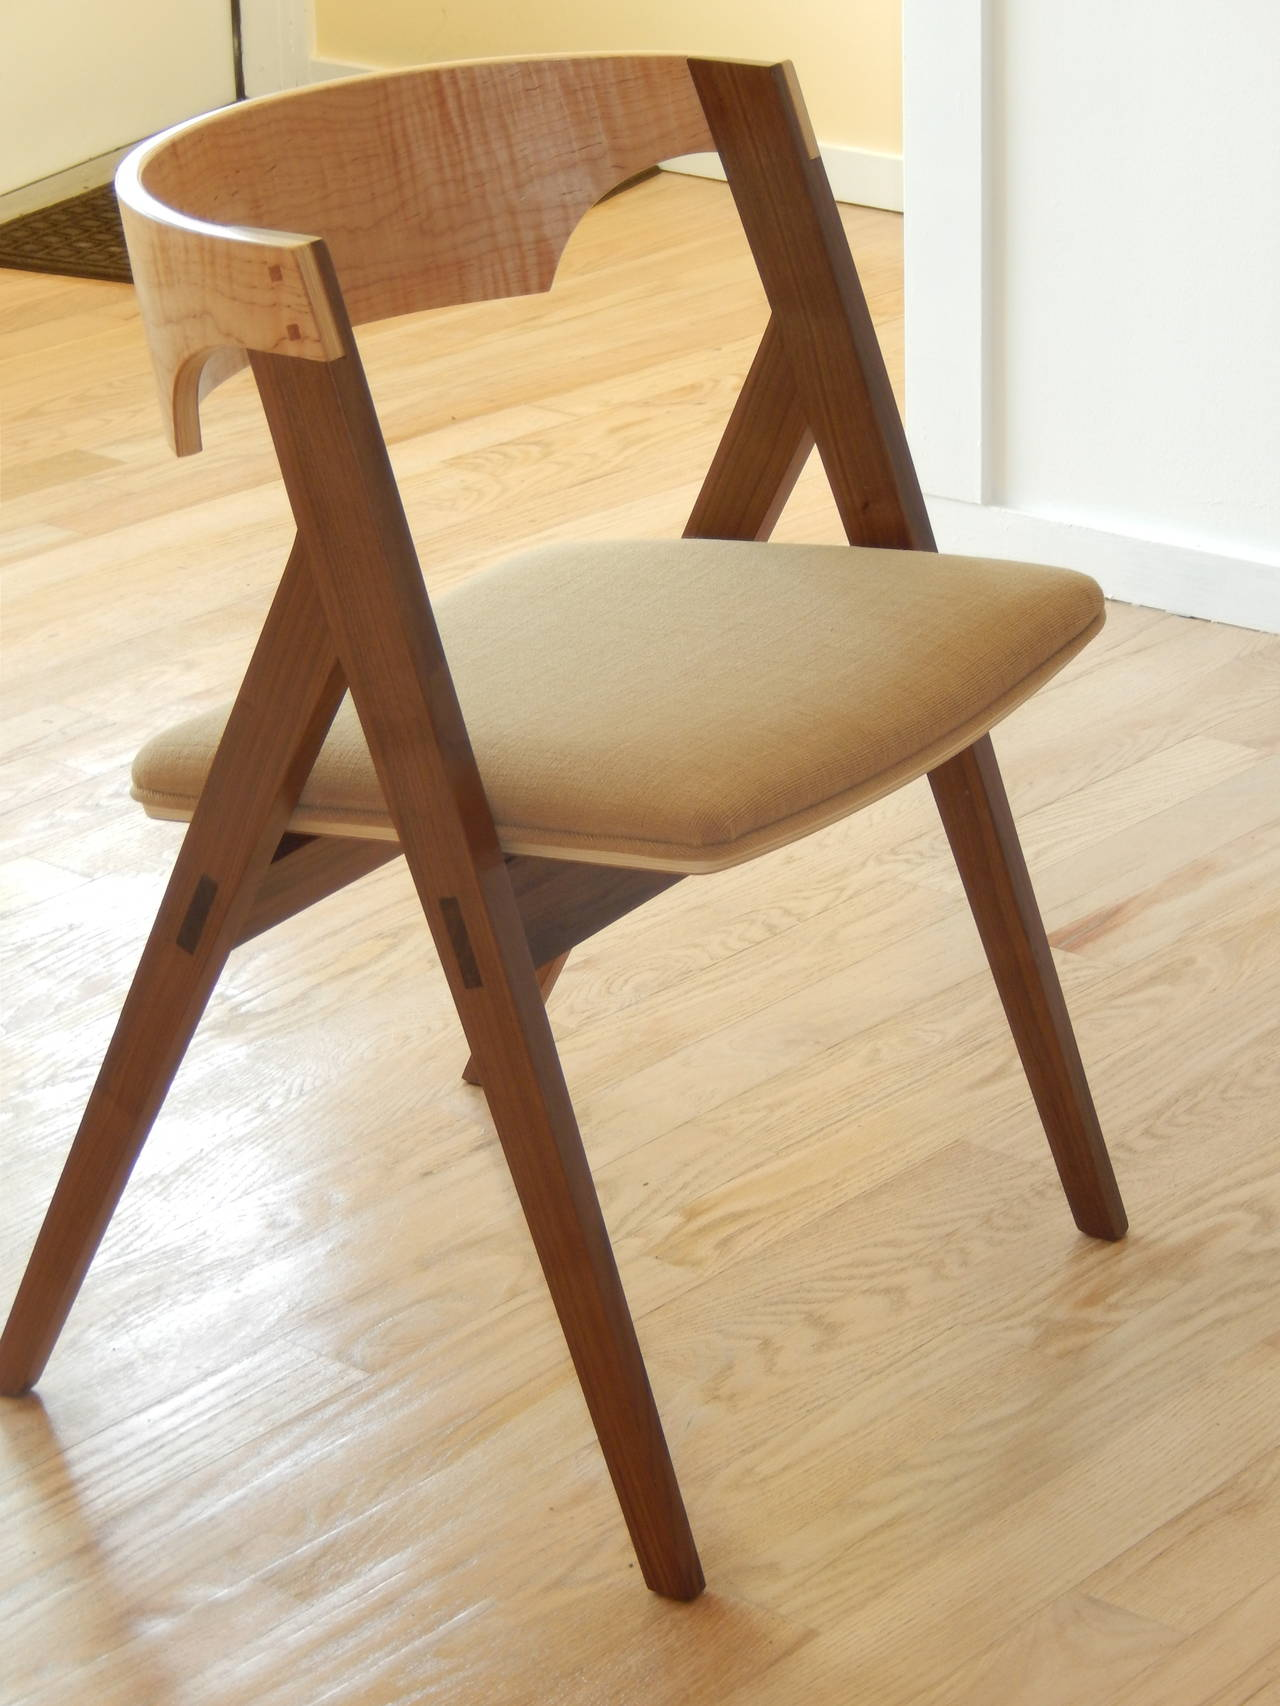 Contemporary David N Ebner's Dining Room or Desk Chair For Sale